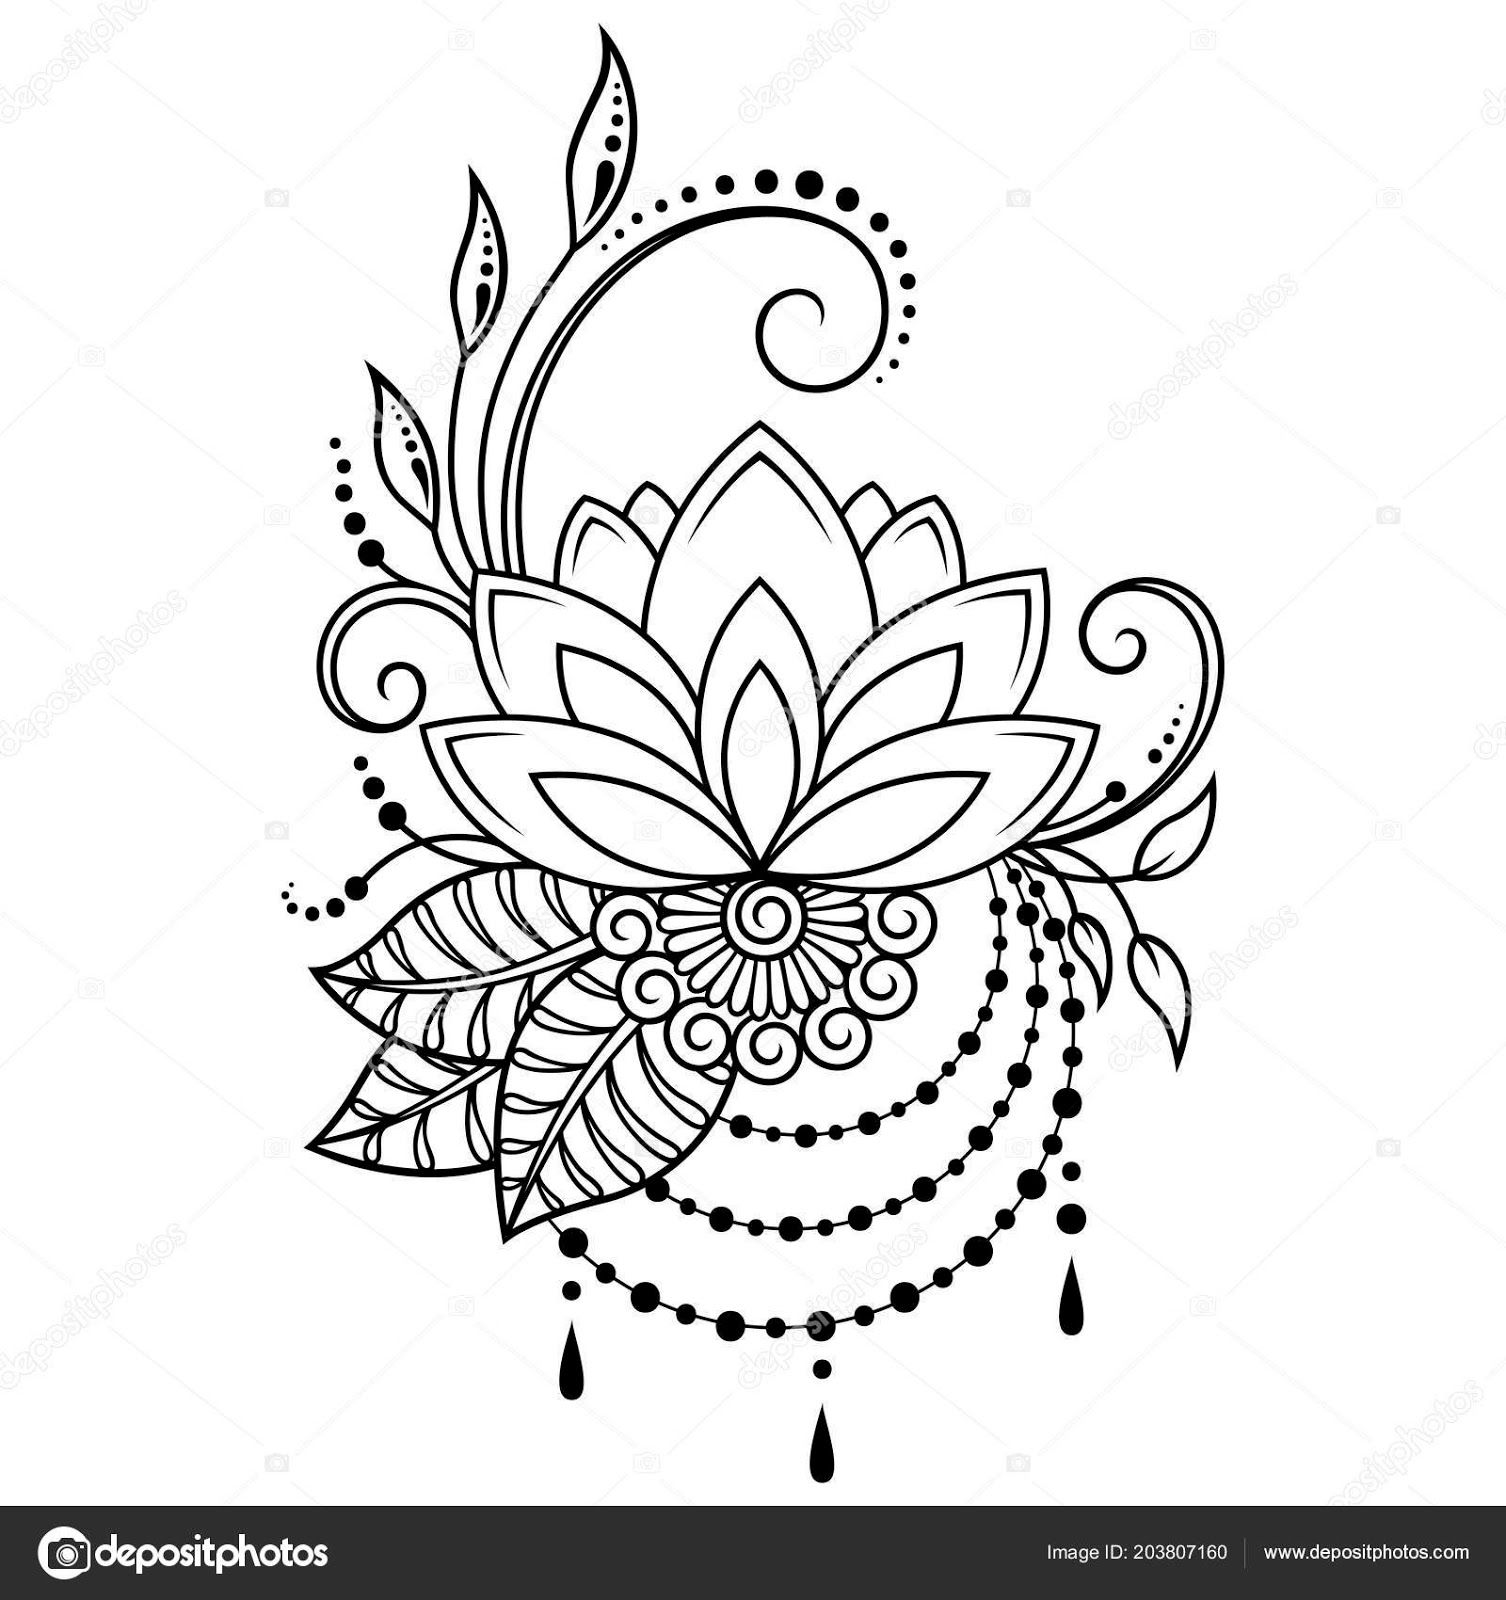 Top 55+ Tattoo Design Drawings Henna drawings, Lotus